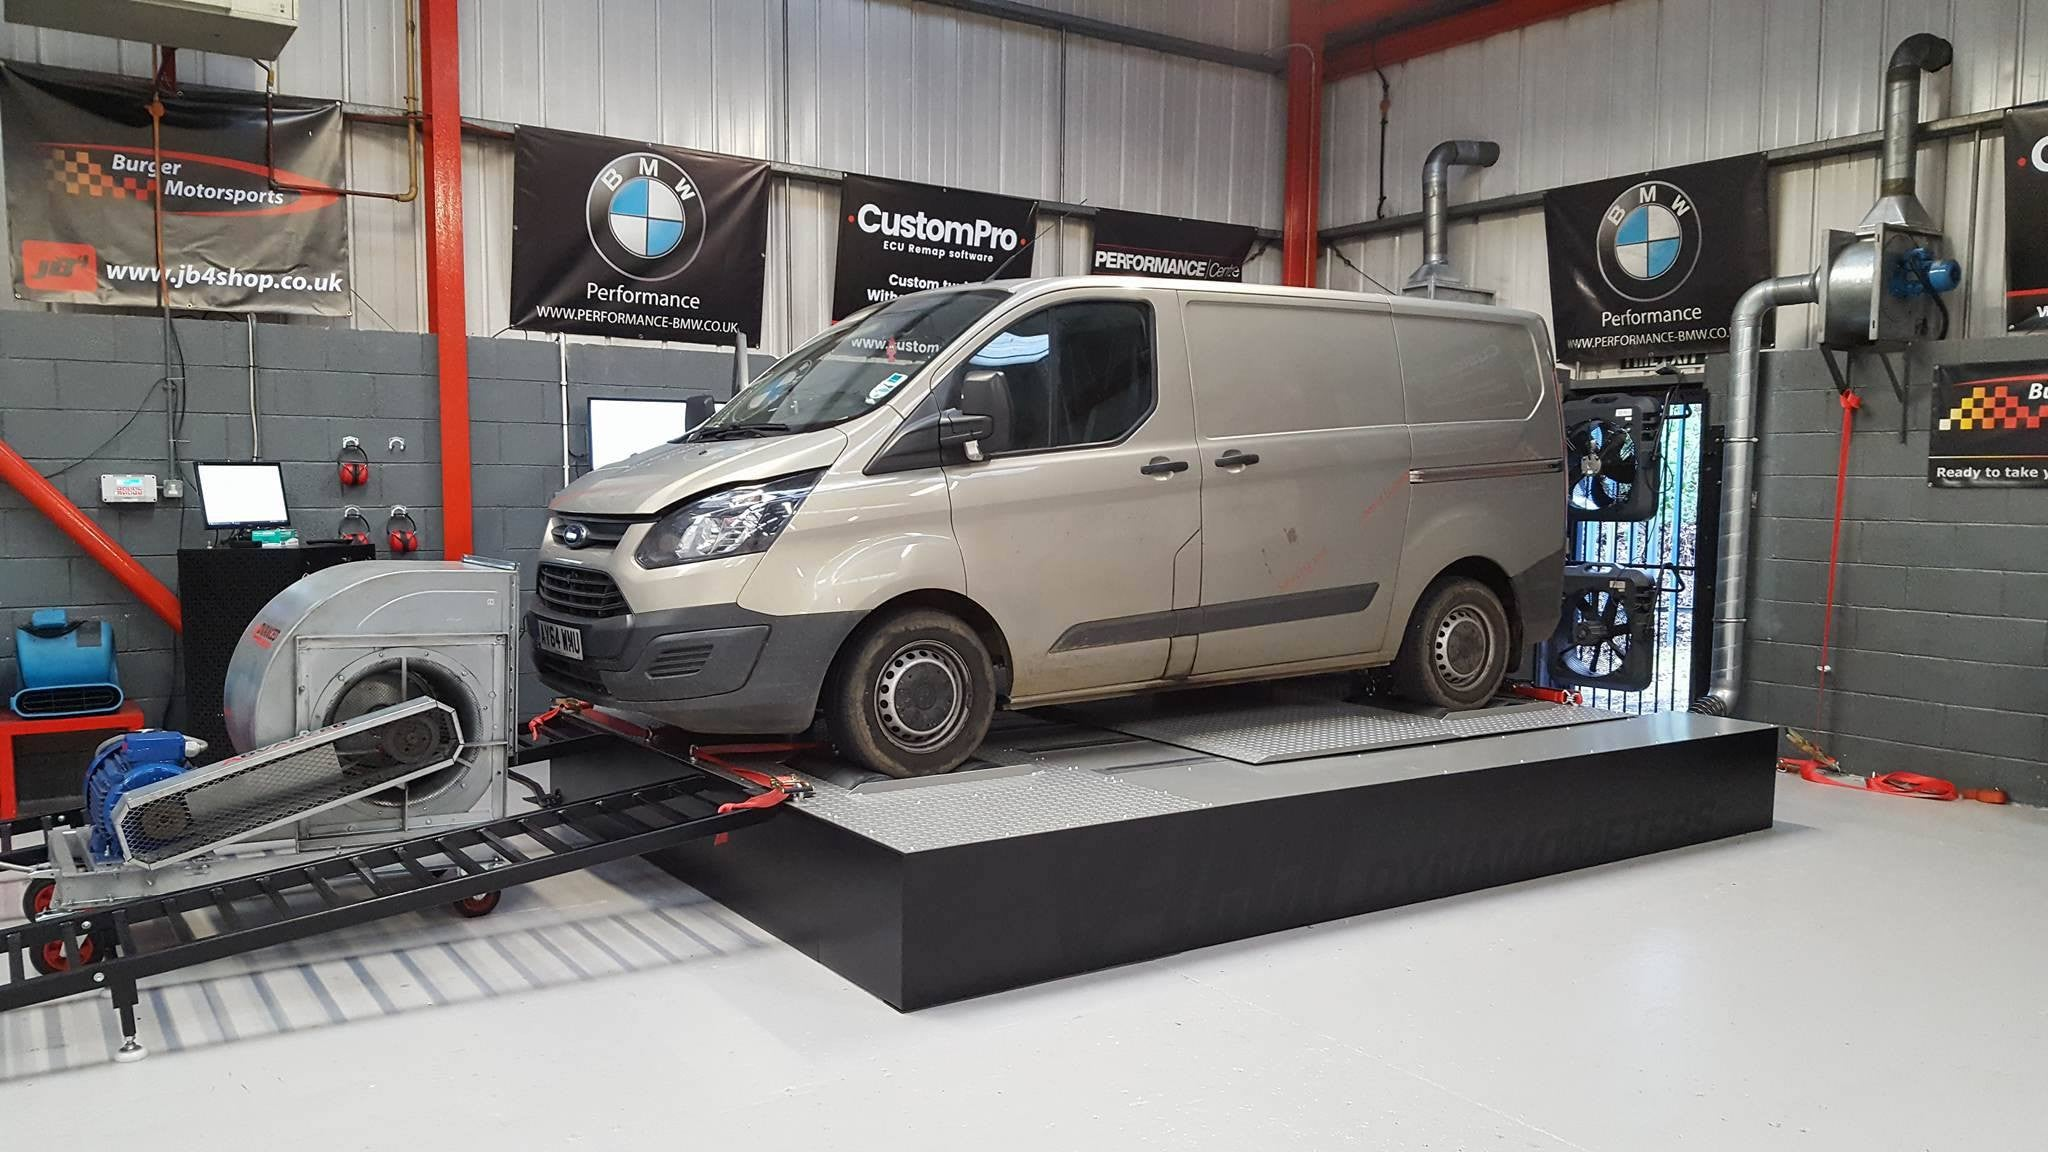 Ford Transit Custom 2.2 100bhp - CustomPro software